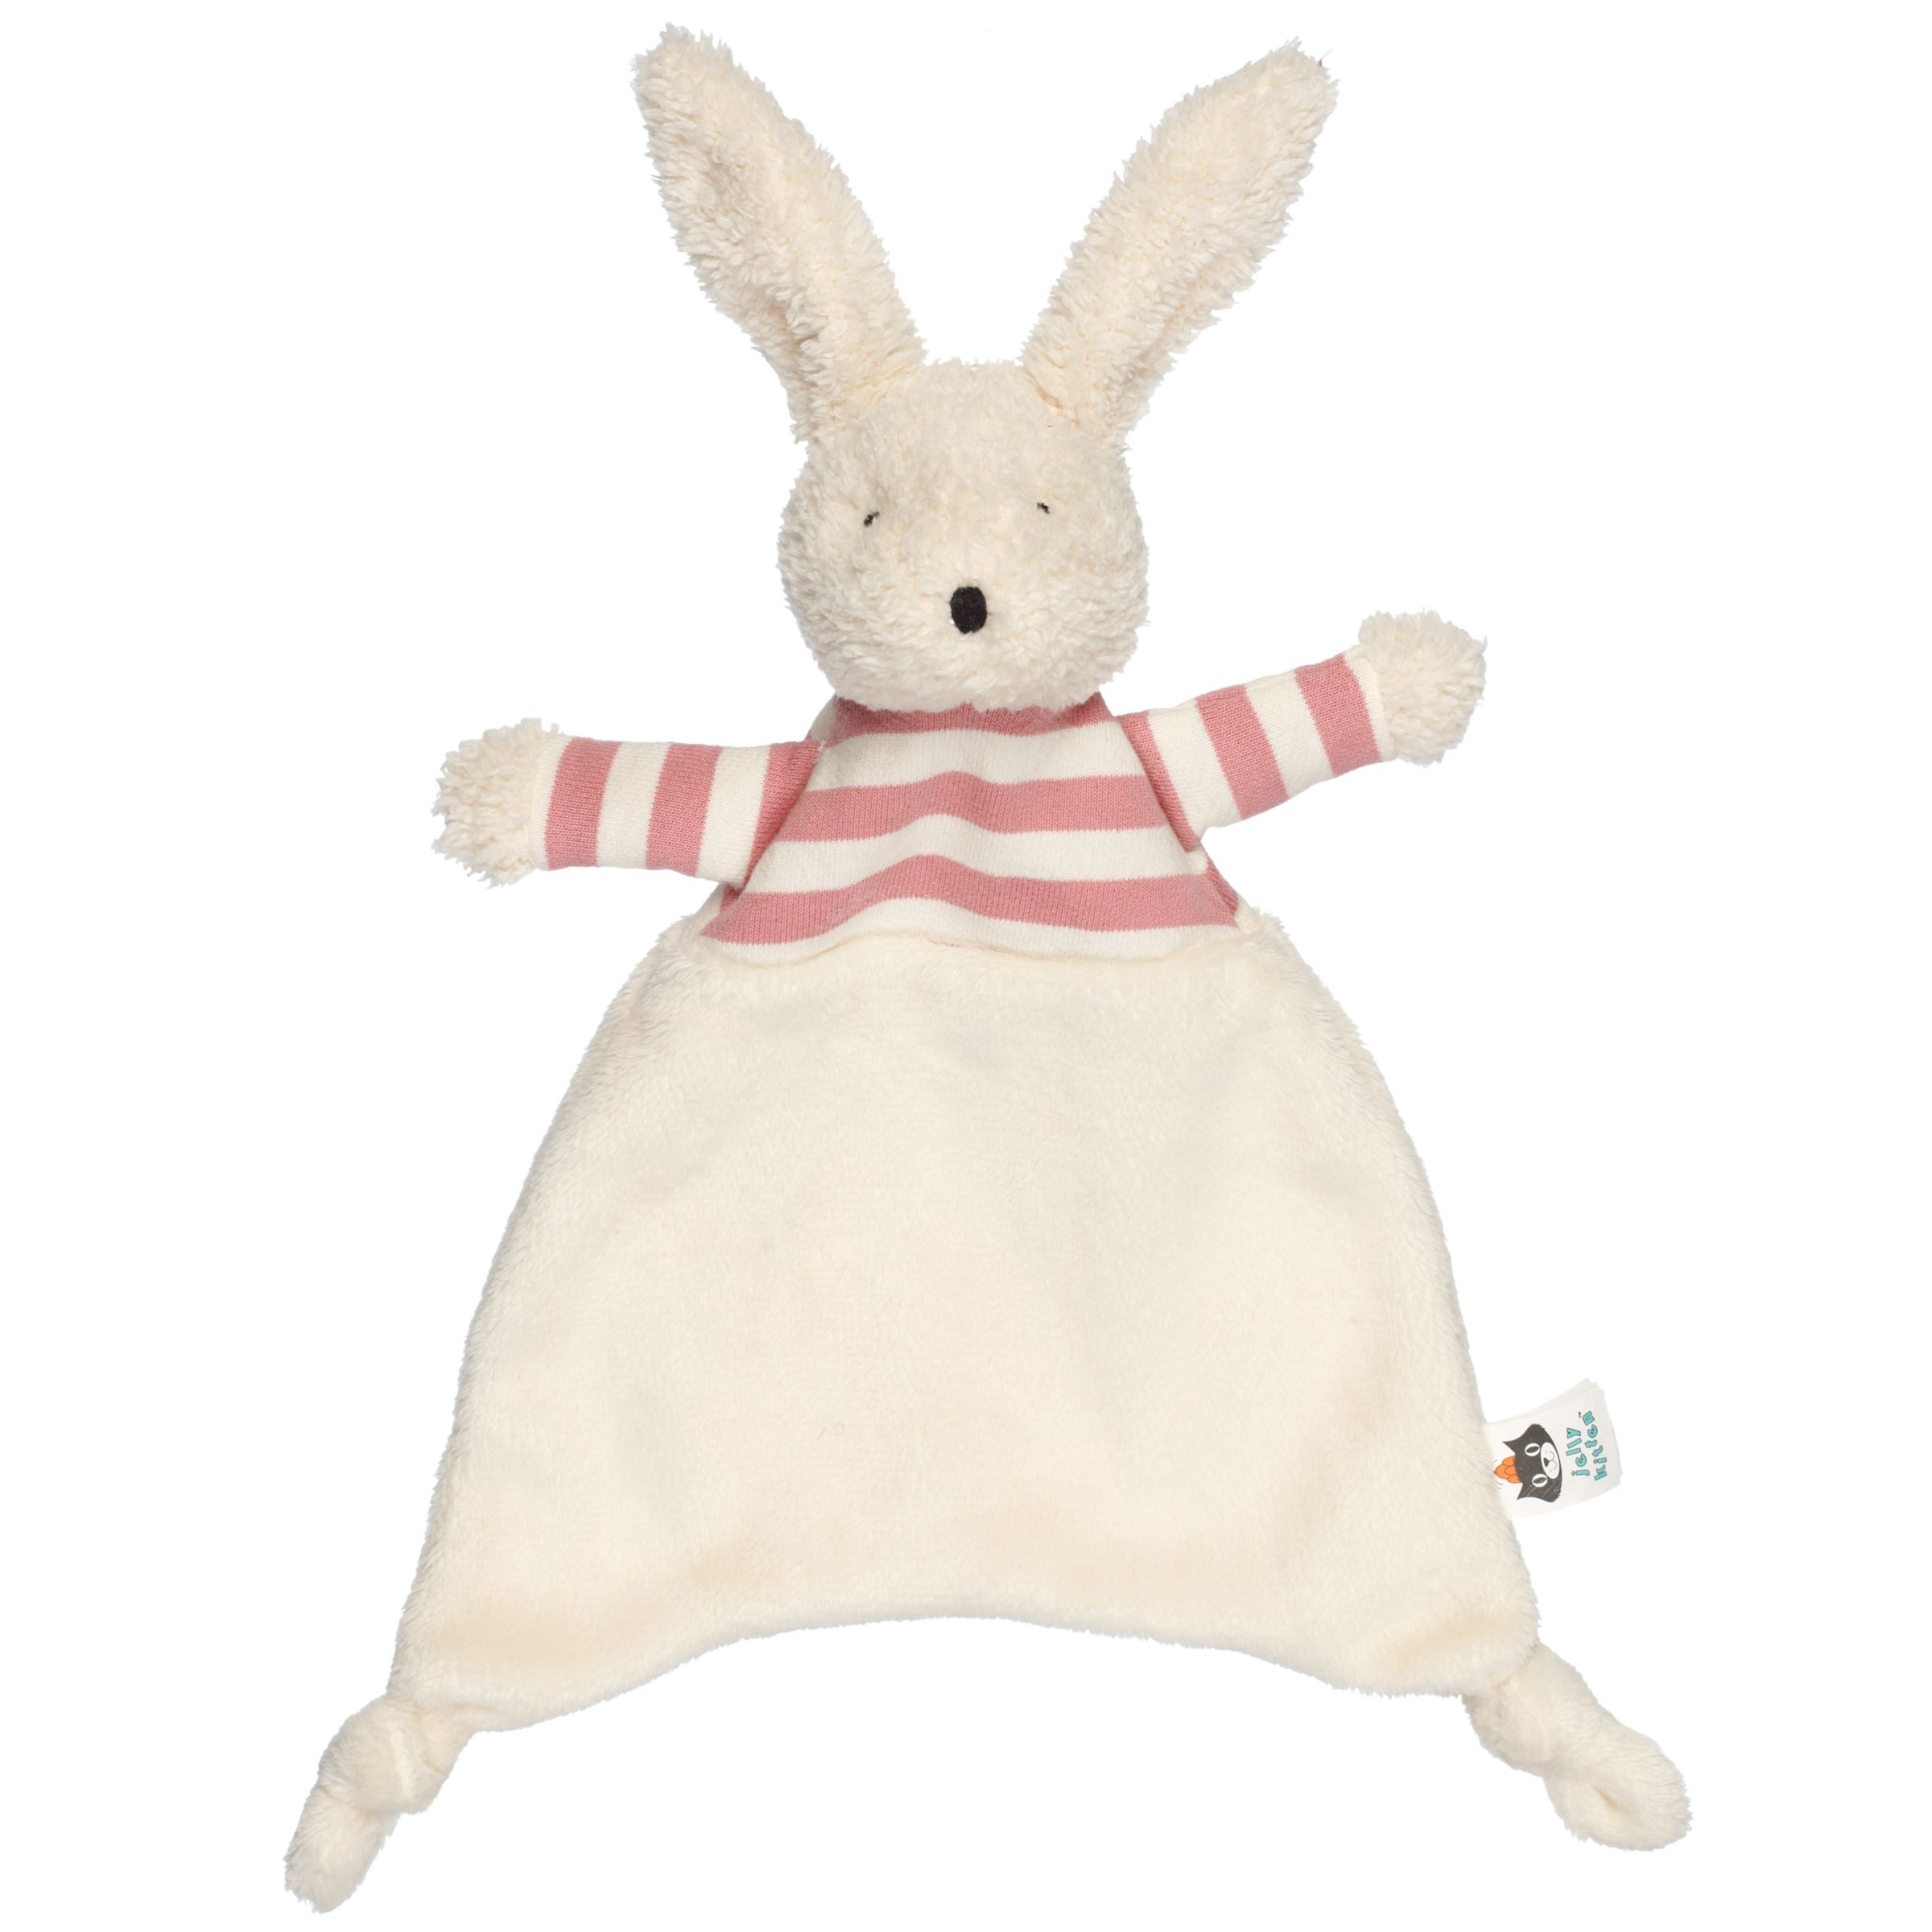 Jellycat Jellycat Bredita Bunny Soother Soft Toy